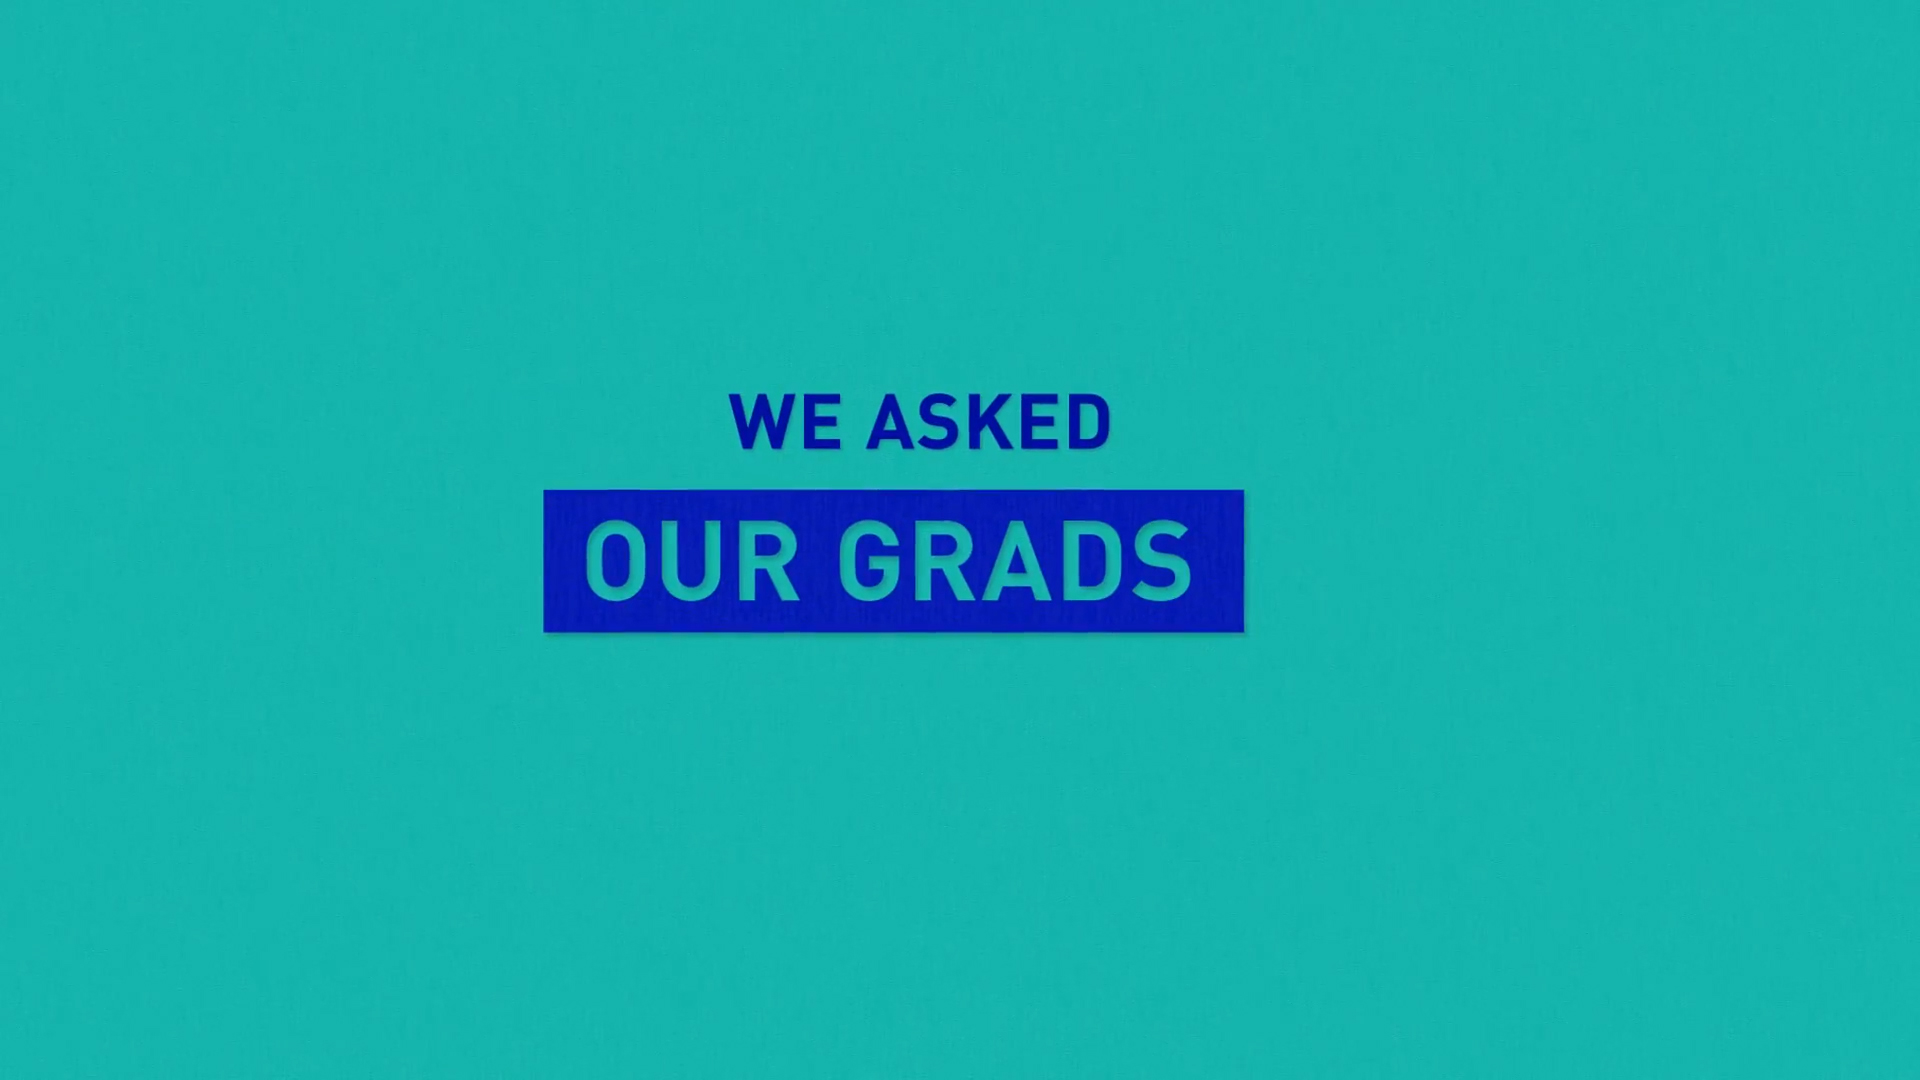 we asked our grads splash image